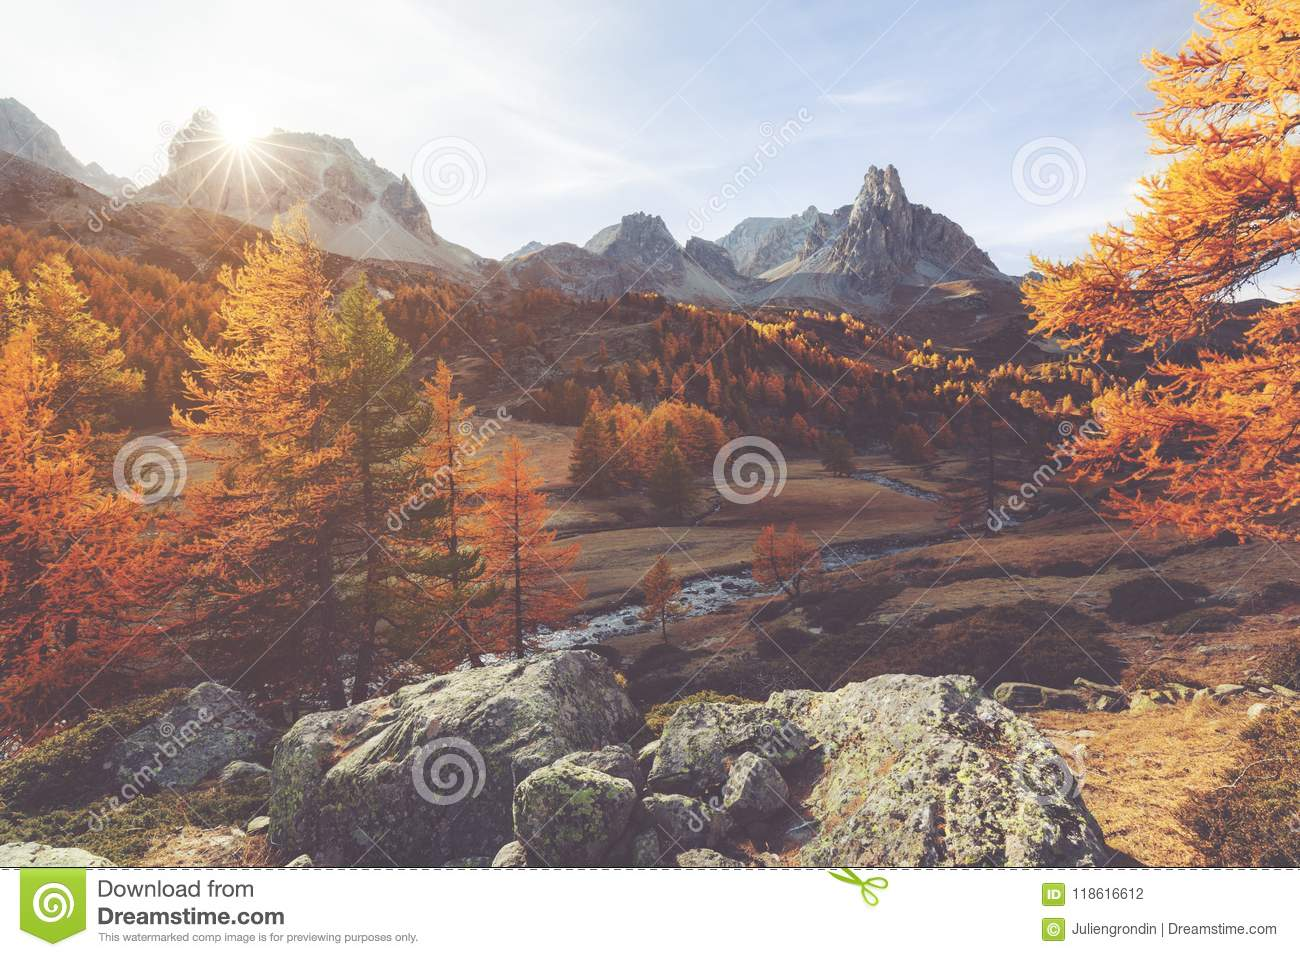 Clarée valley during Autumn in France